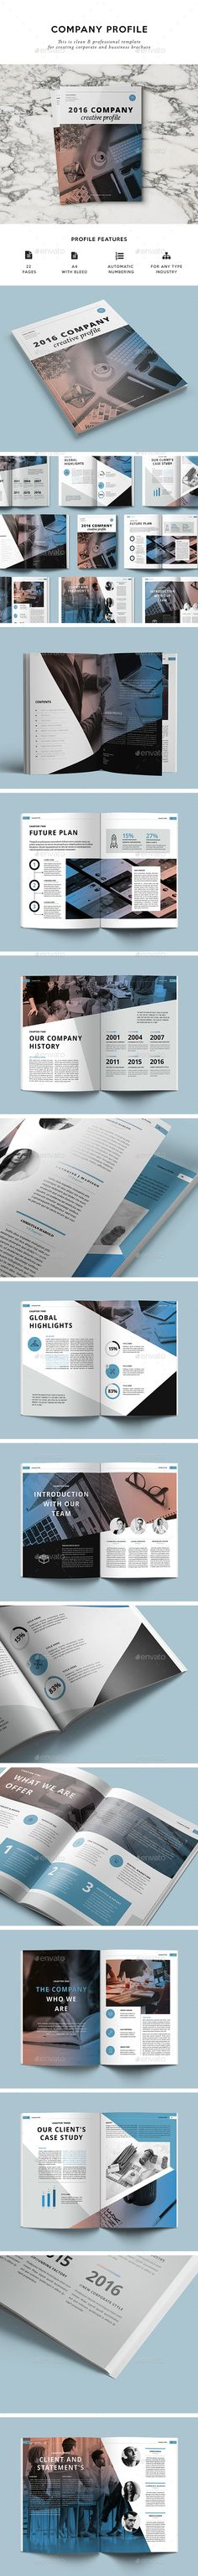 A4 Corporate Business Brochure Business brochure, Corporate - corporate profile template